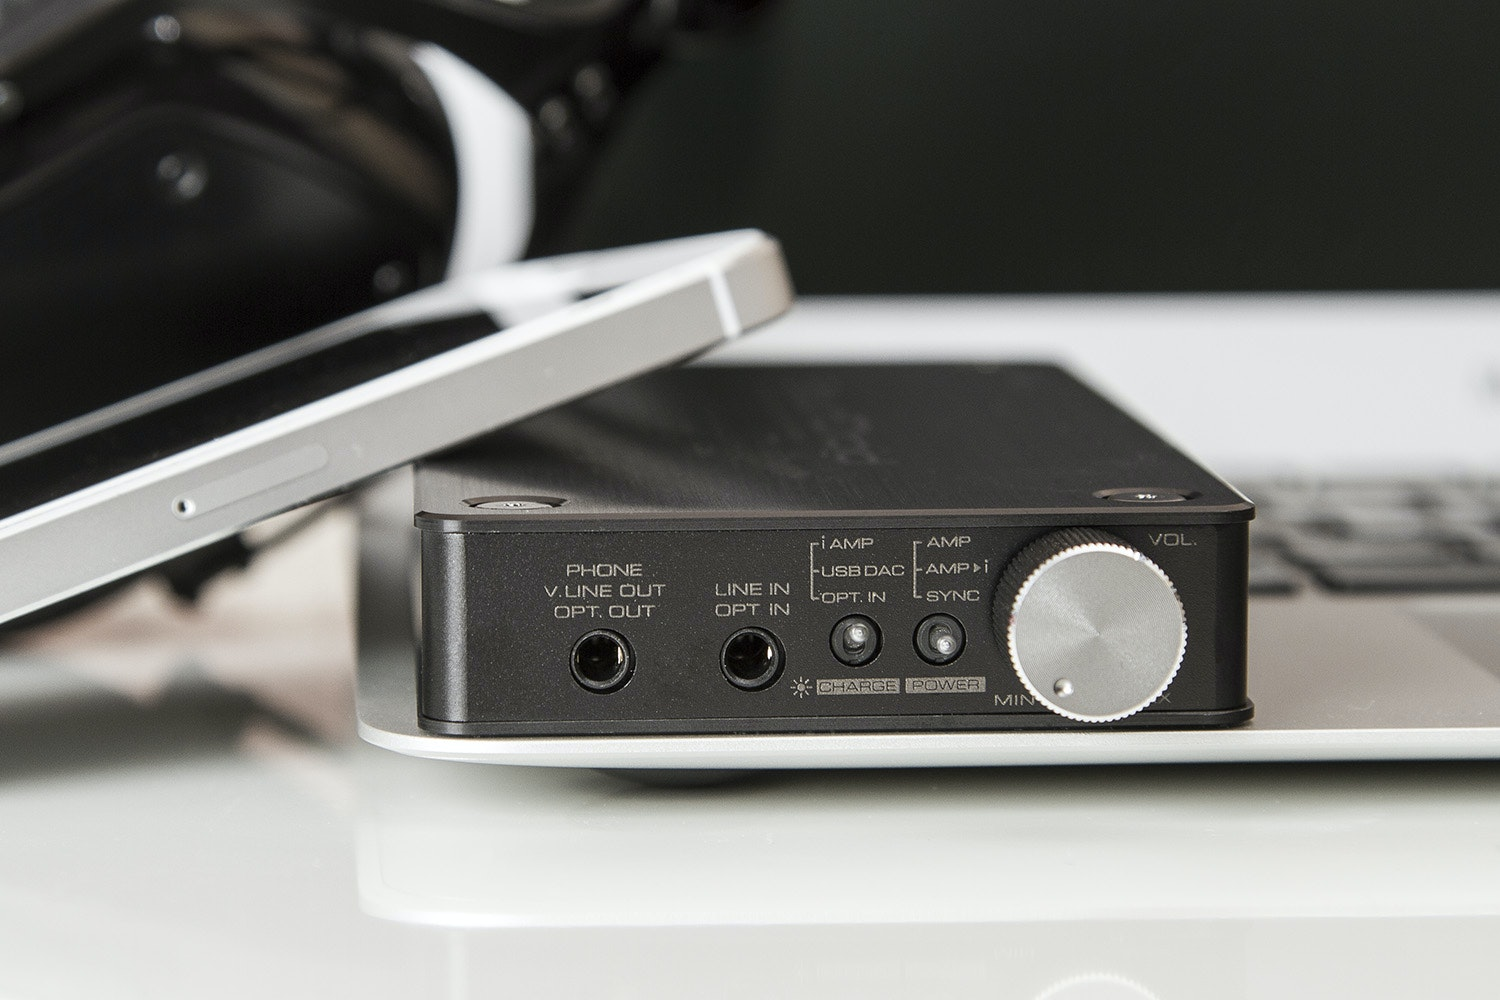 VentureCraft Typhoon SounDroid DAC/Amp